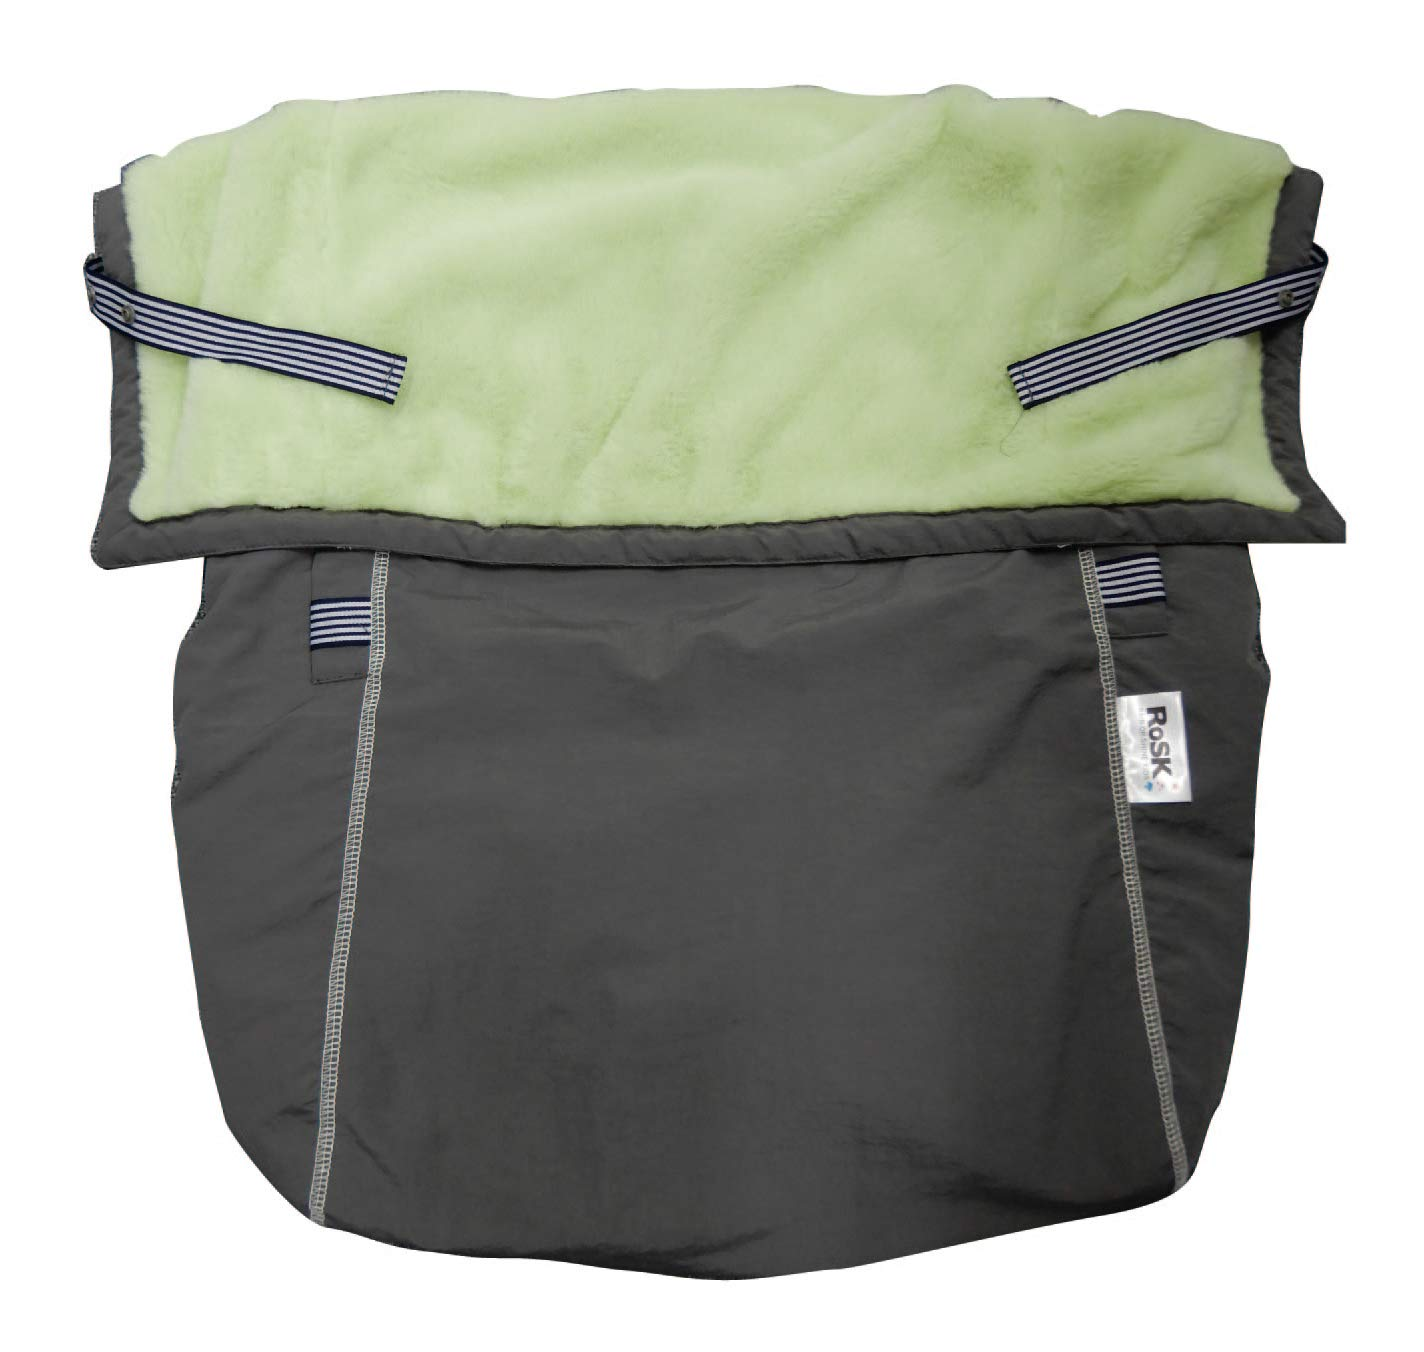 Woobee Pouch Baby Carrier Cover_3way (Pistachio)